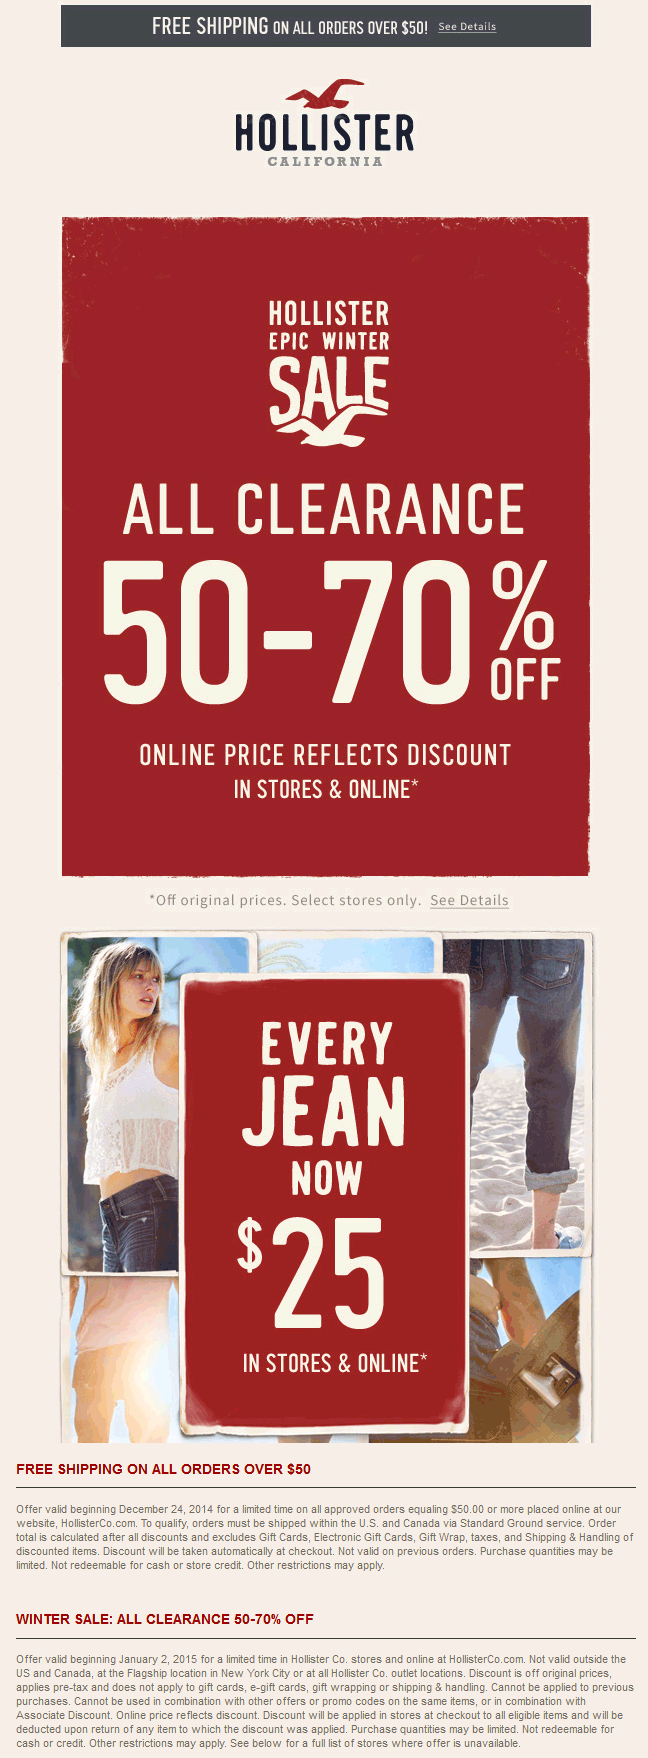 Hollister Coupon December 2018 Extra 50-70% off clearance at Hollister, ditto online